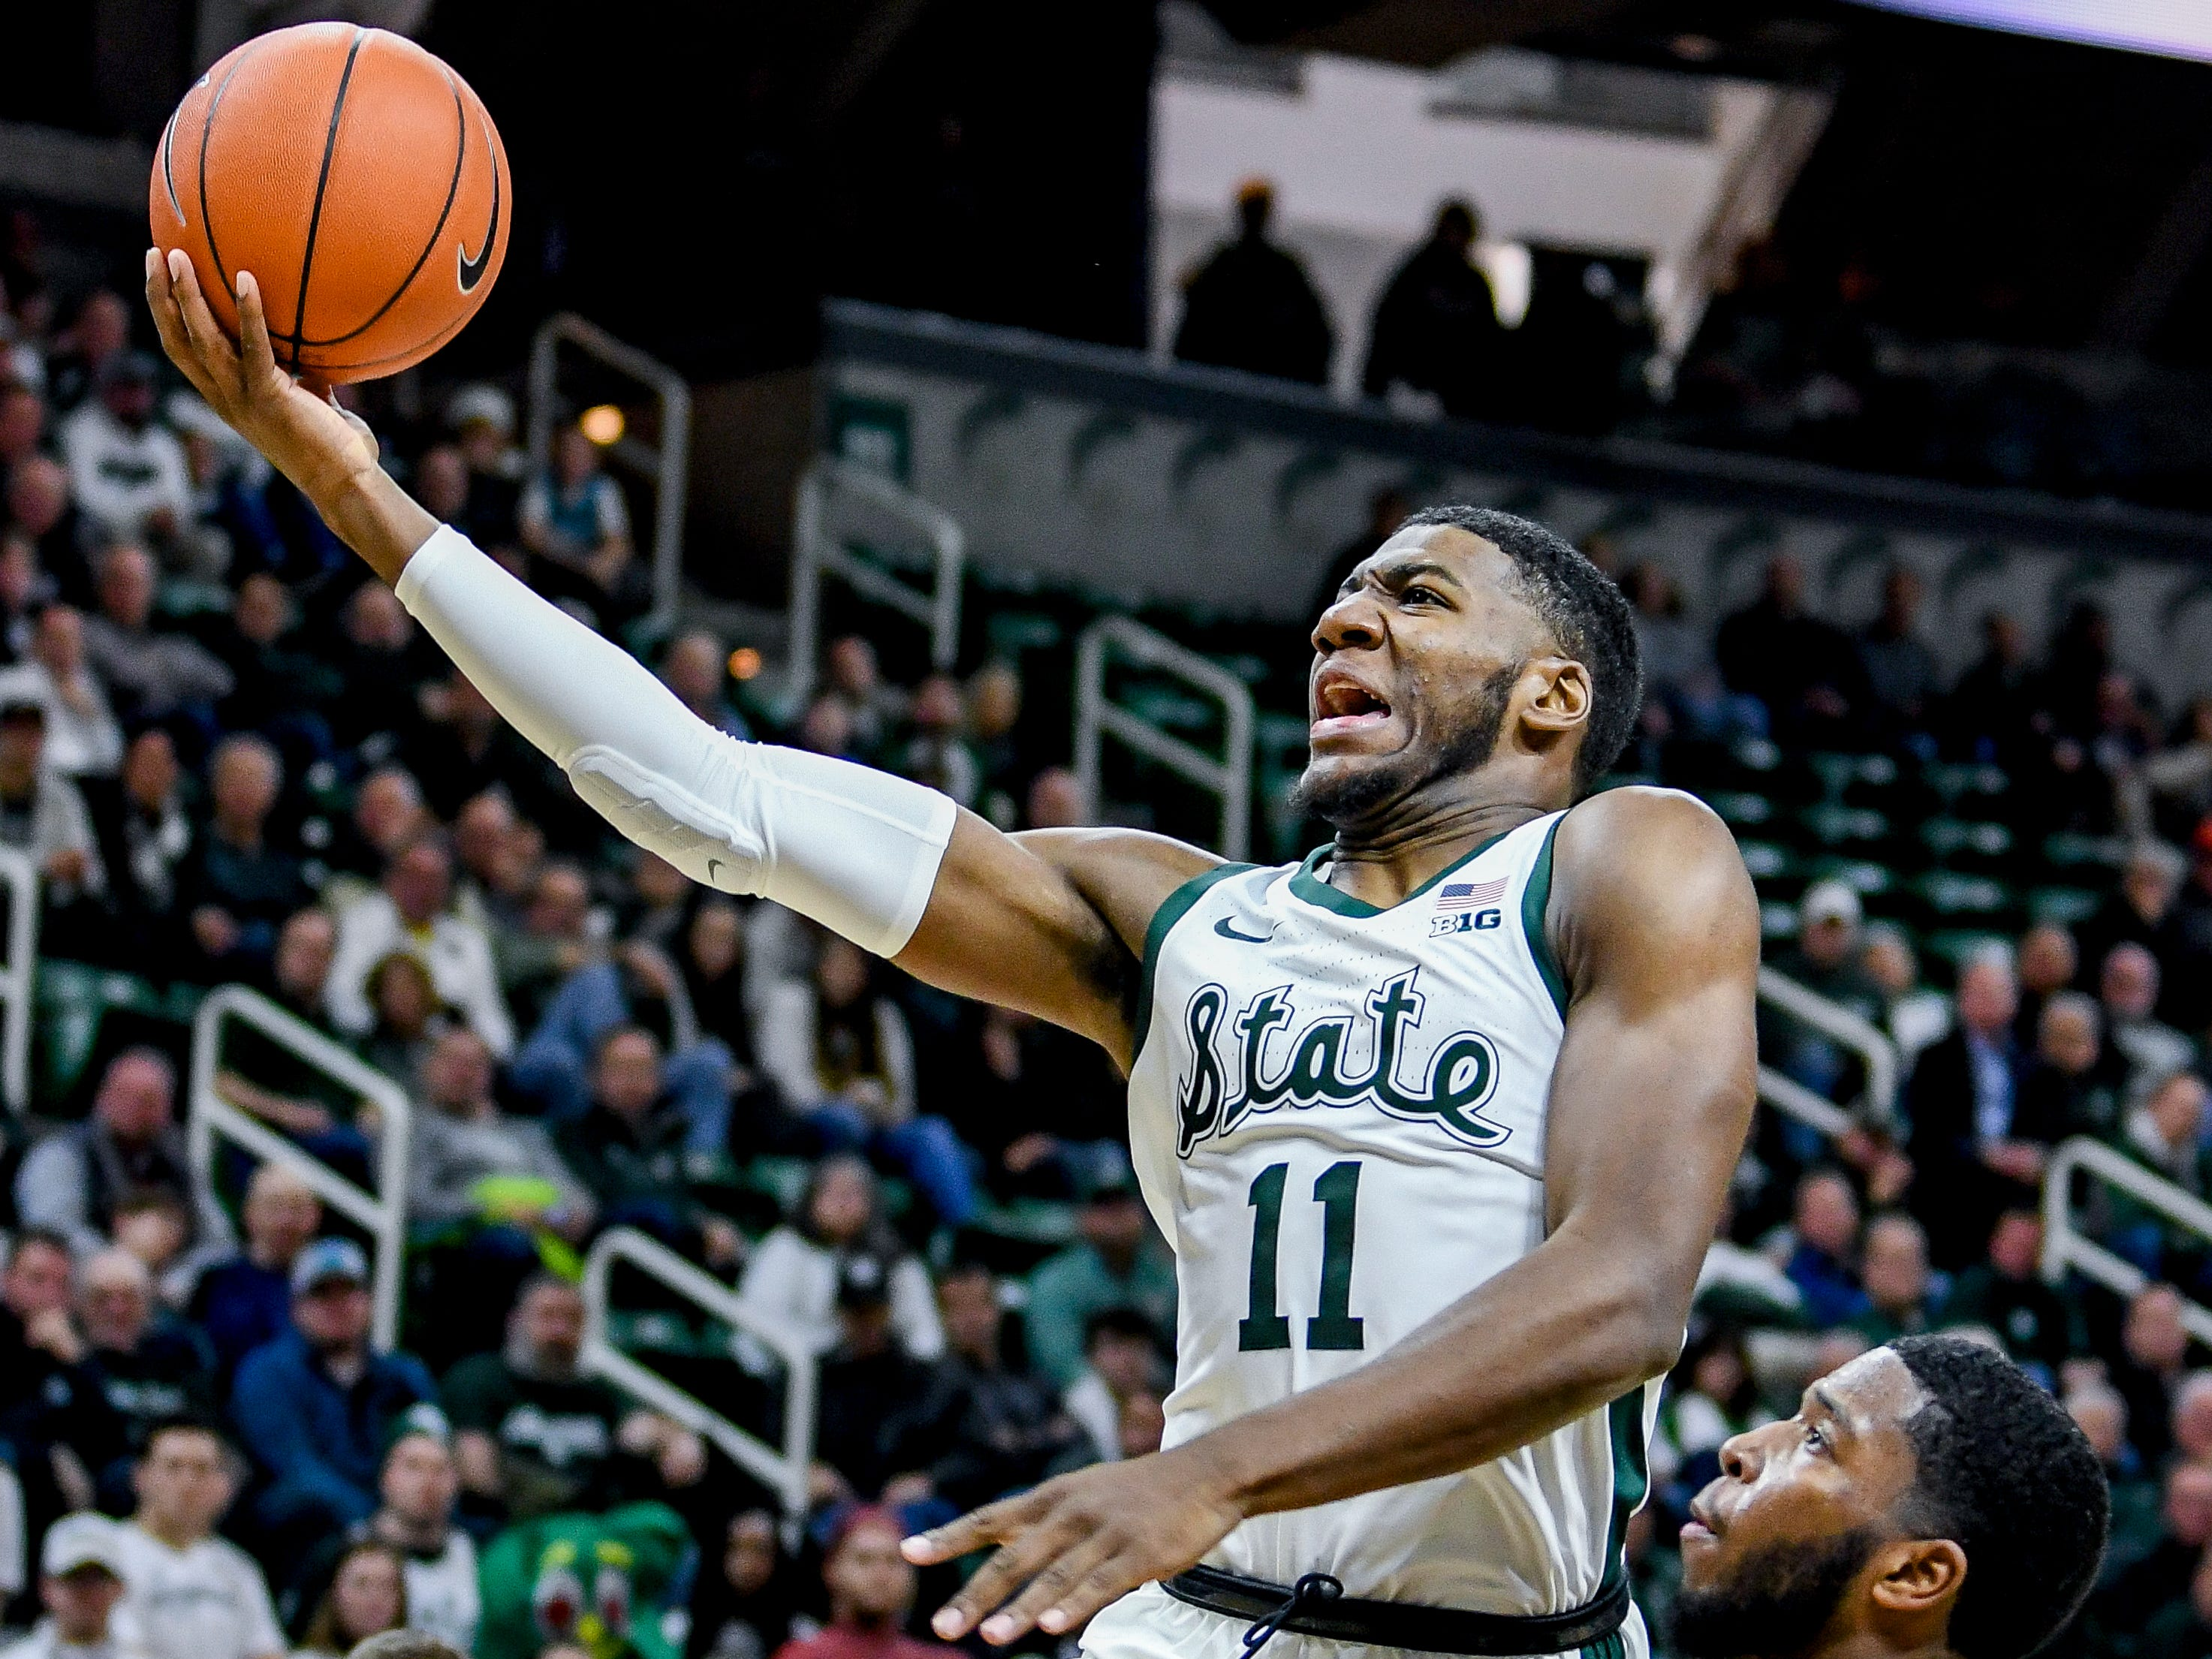 Michigan State's Aaron Henry shoots during the second half on Monday, Dec. 3, 2018, at the Breslin Center in East Lansing. Michigan State beat Iowa 90-68.